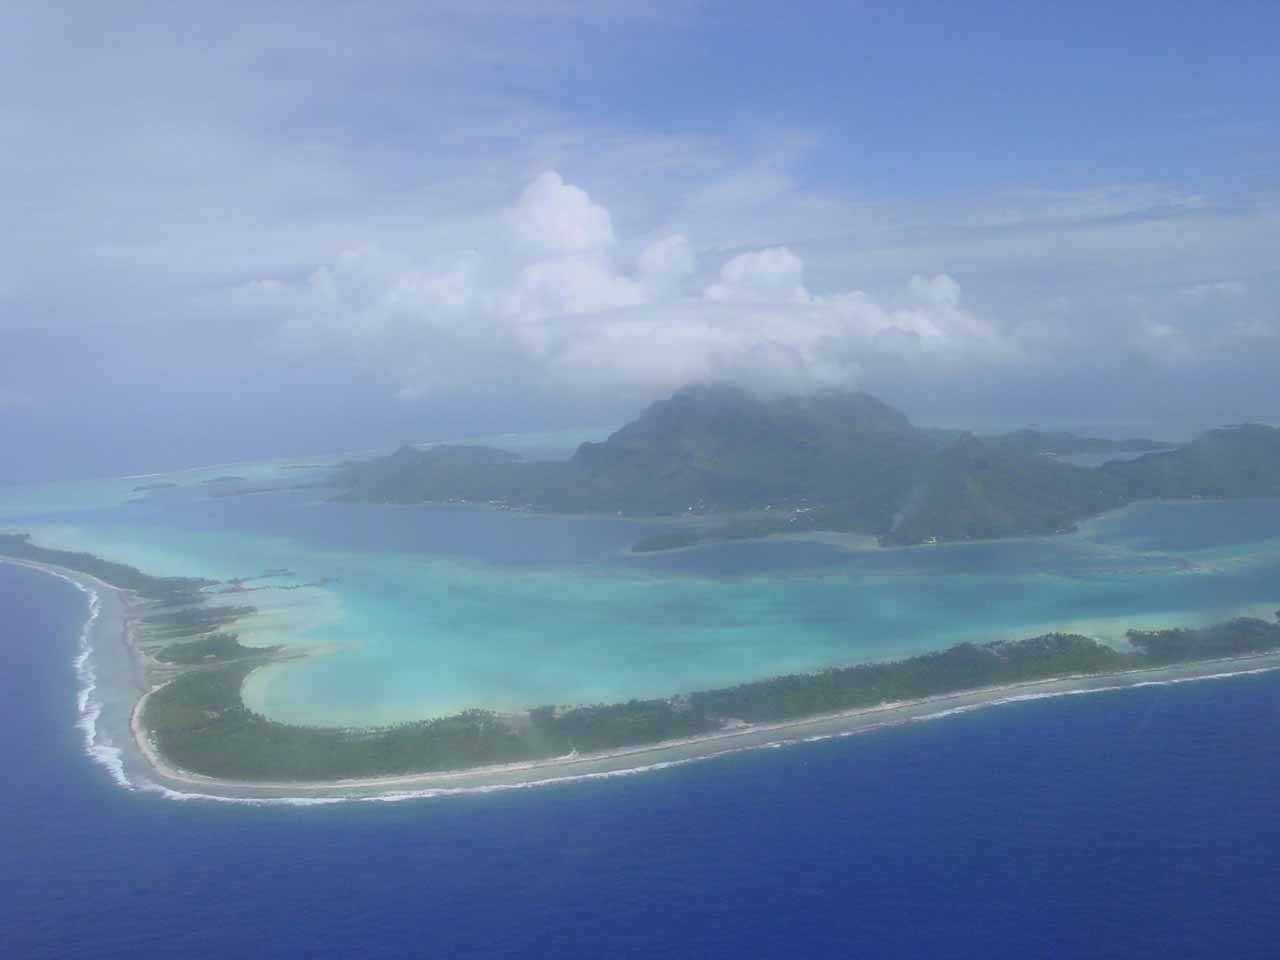 Looking over Bora Bora and its lagoons as we were approaching its airstrip in the Dry Season